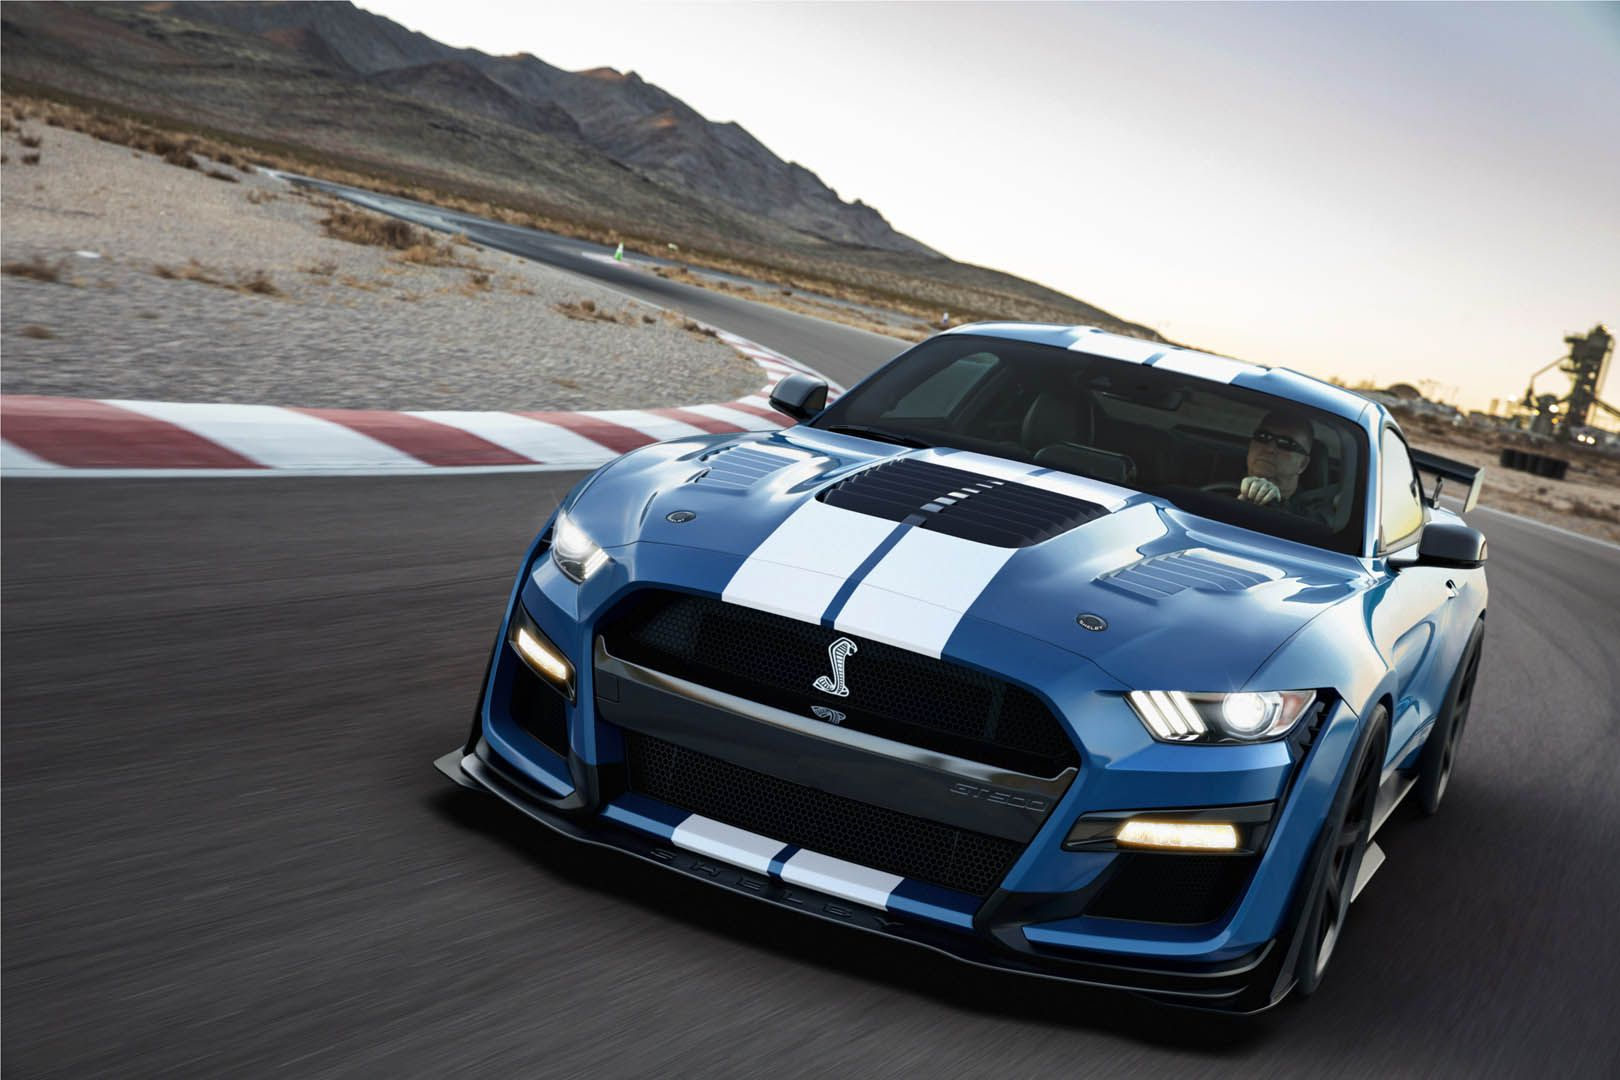 Want More Power And Better Handling Try The Mustang Shelby Gt350se Or Gt500se Top Speed In 2020 Mustang Shelby Ford Mustang Shelby Shelby Gt500